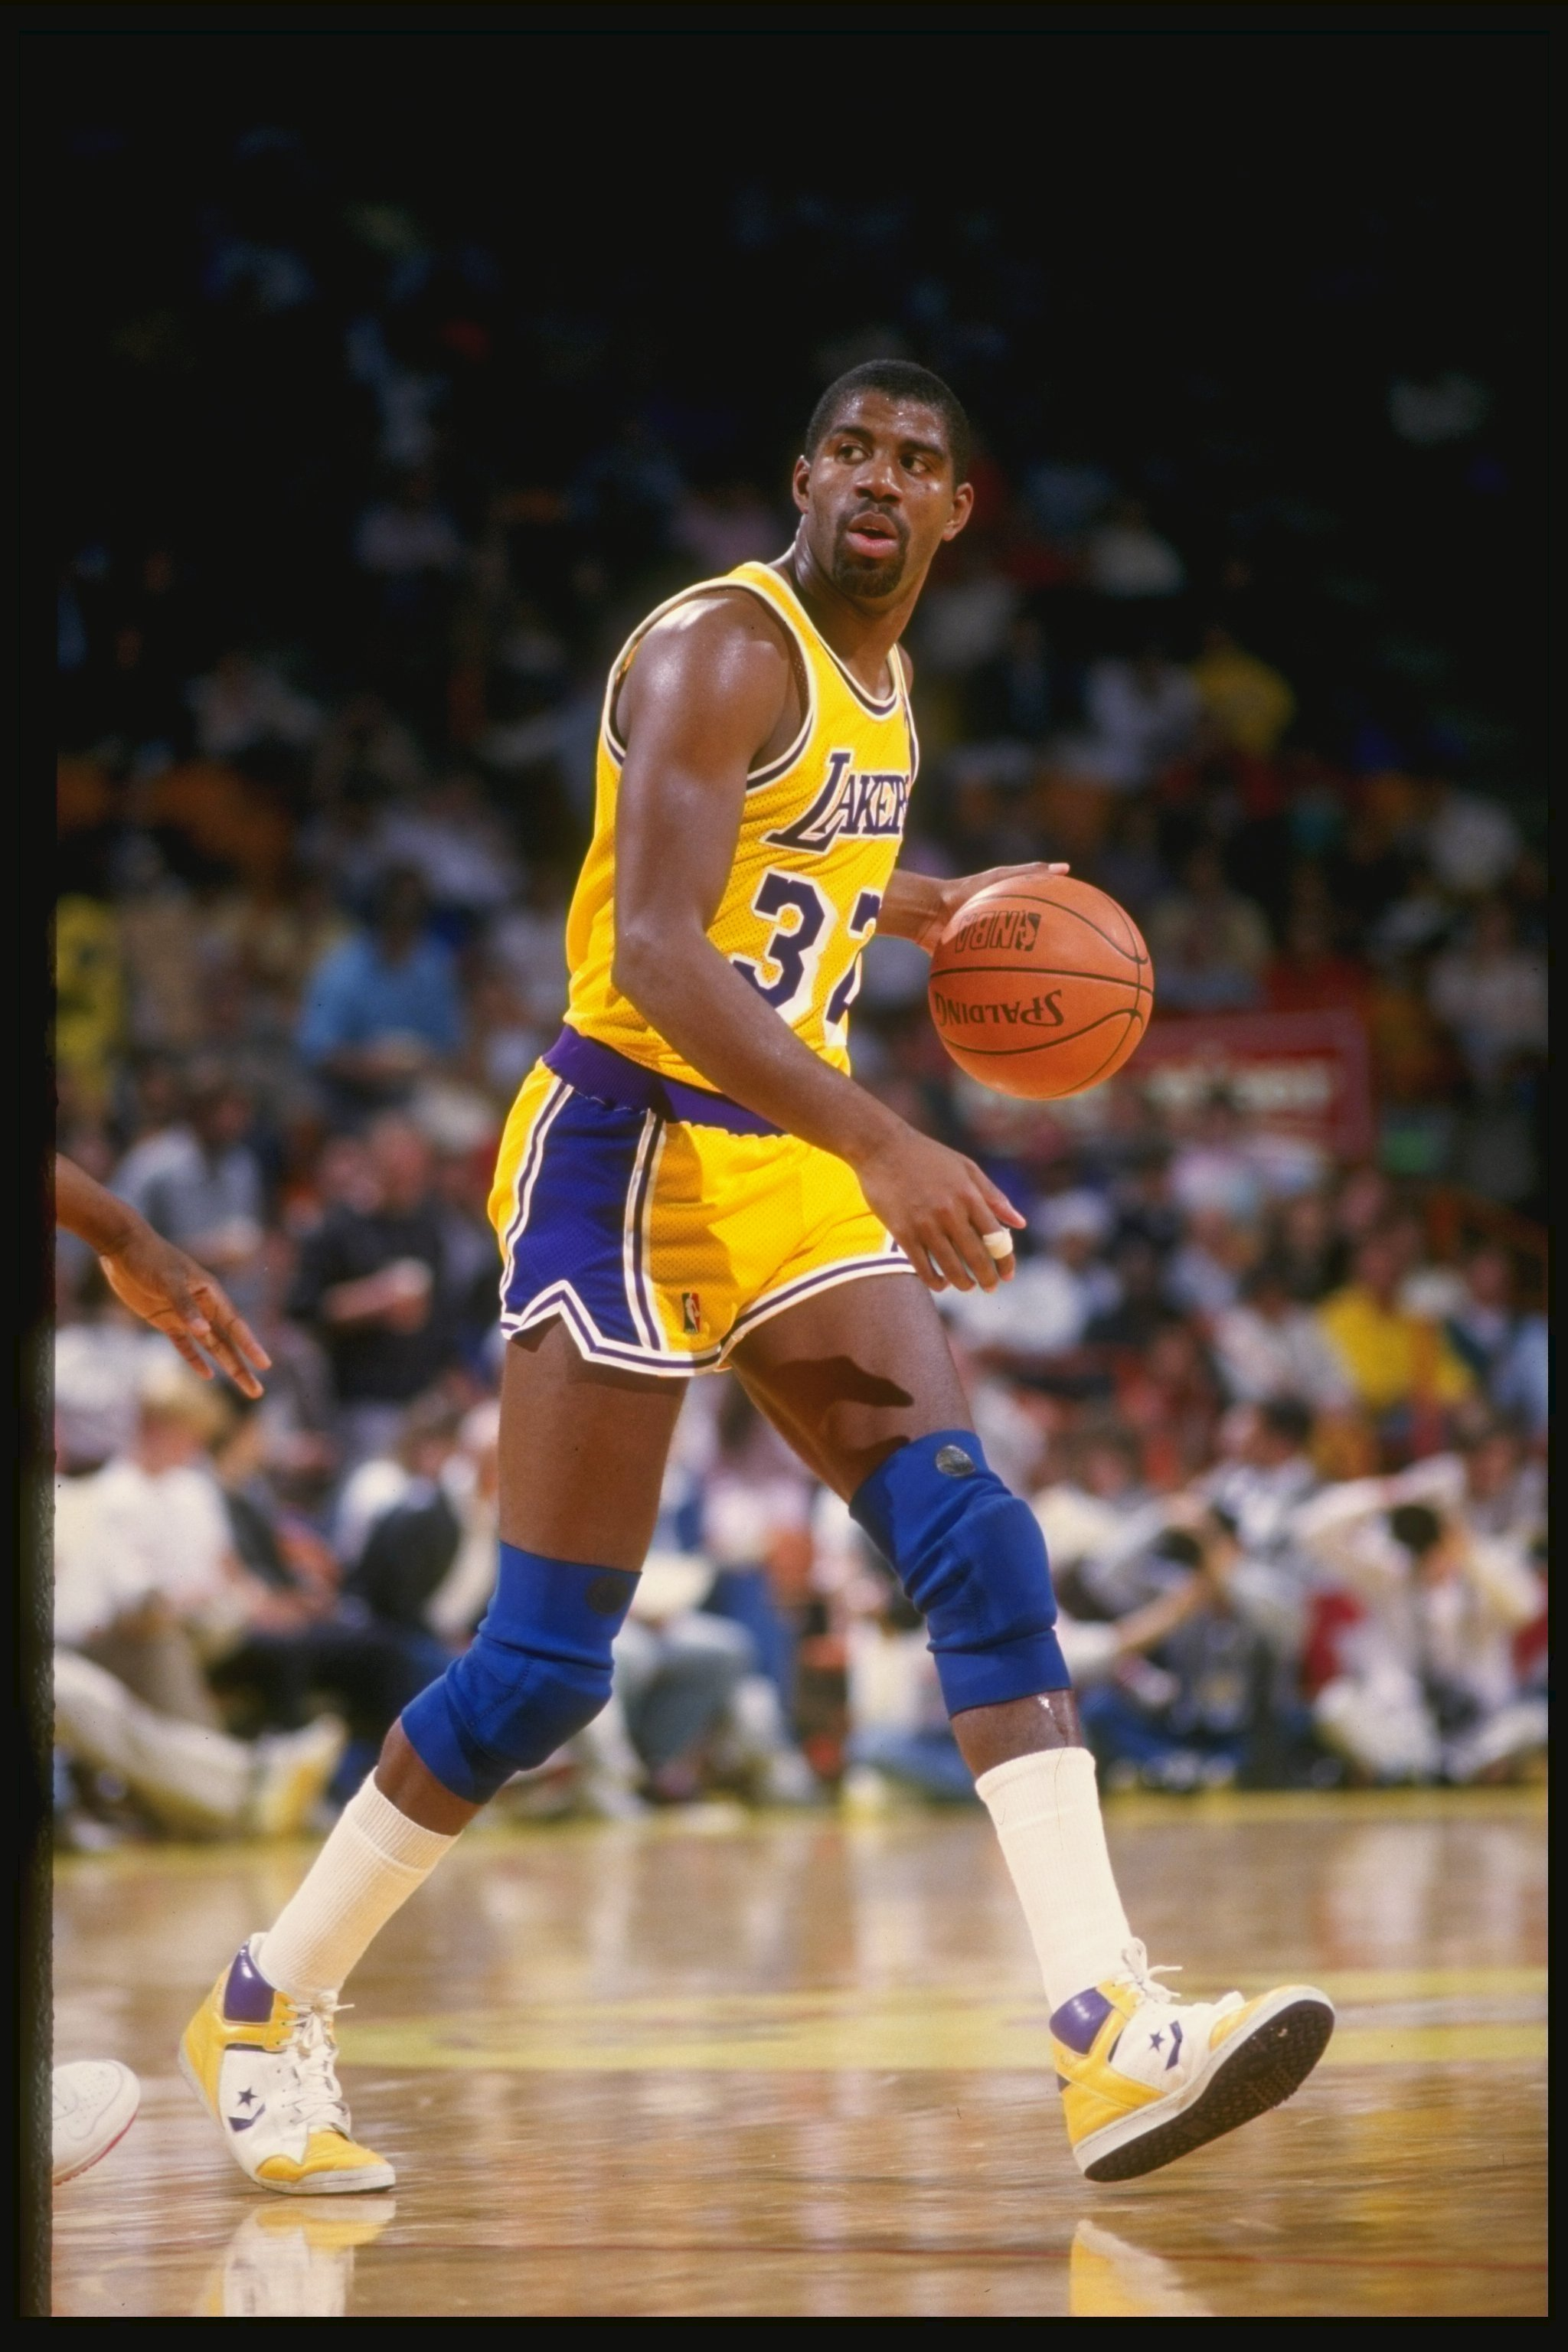 Former Los Angeles Lakers baller Magic Johnson dribbles the ball during a game at the Great Western Forum in Inglewood, California circa 1987. | Source: Getty Images